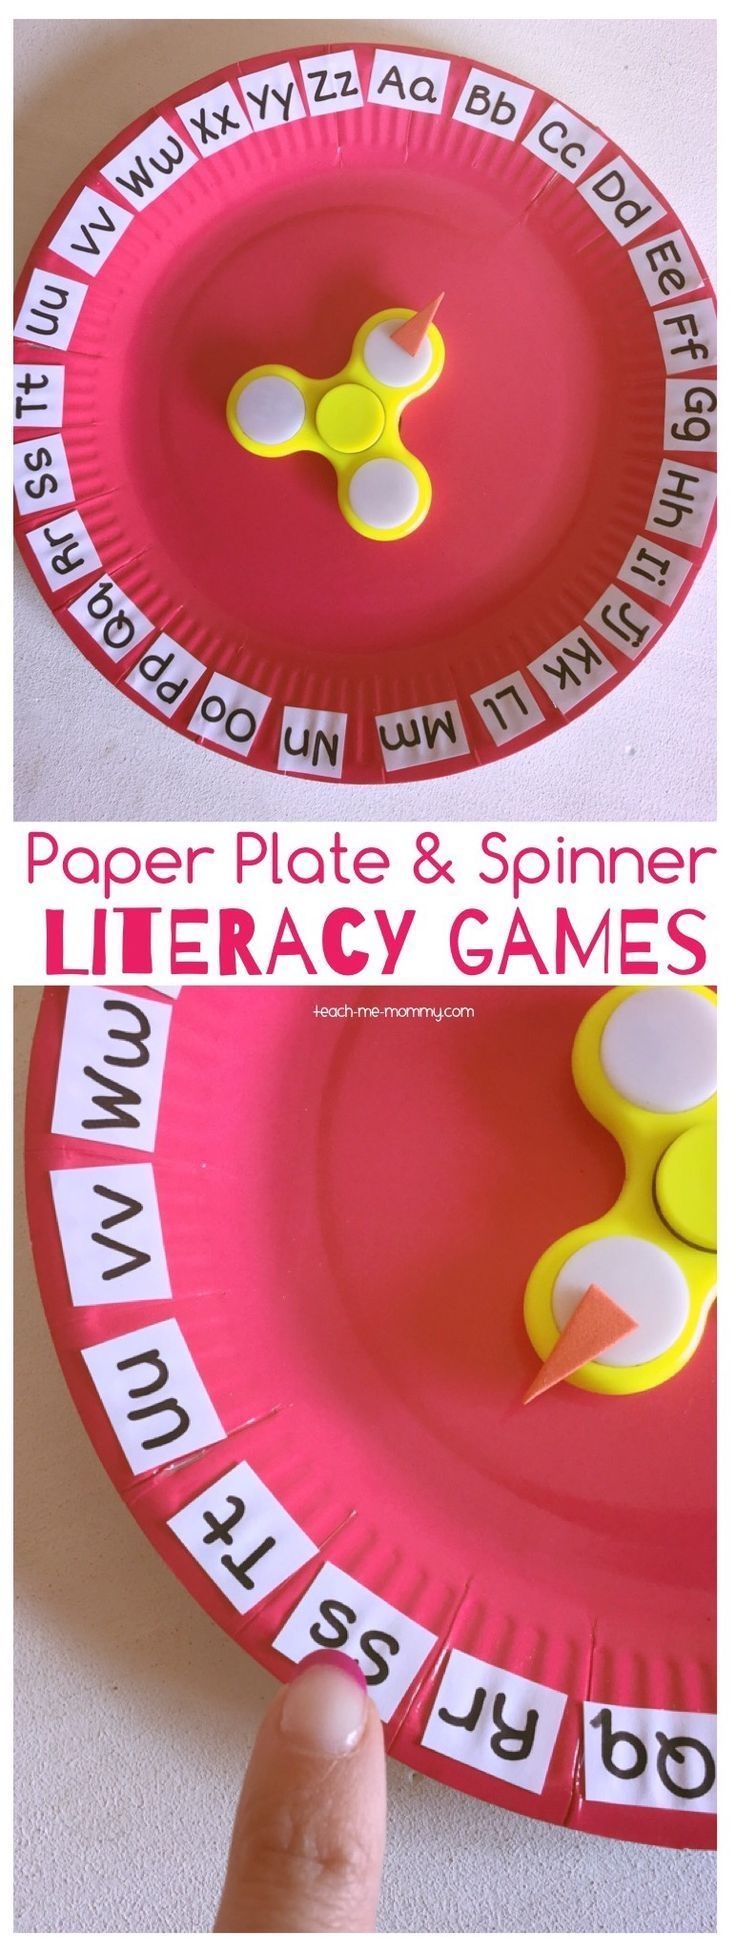 Paper Plate  Spinner Literacy Games Paper Plate  Spinner Literacy Games